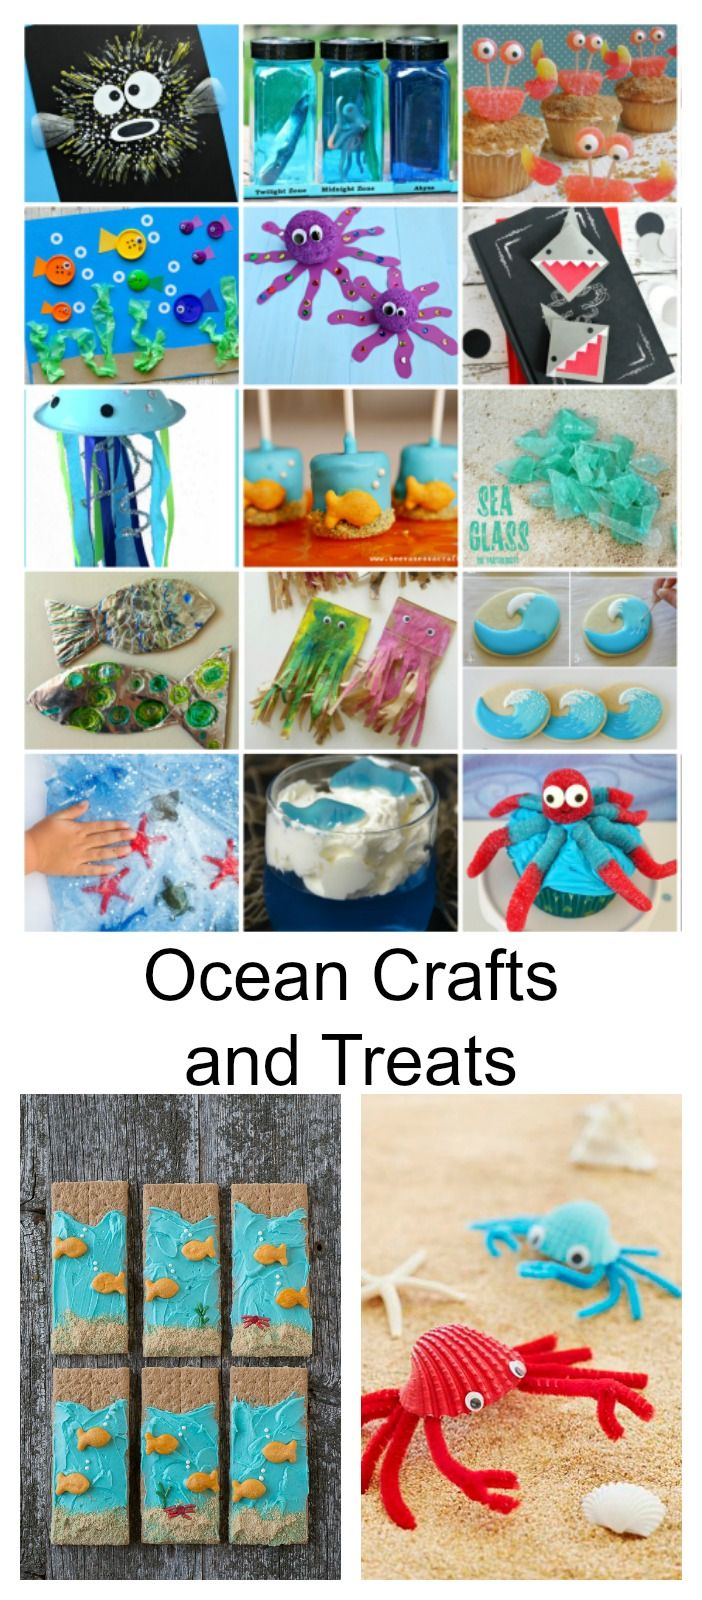 Craft Ideas  It's summertime and some of you may be heading to the ocean. For those of you that are not, why not bring the ocean to you with these fun Ocean Crafts and Treats. These ideas would also be great for an ocean themed party or school craft idea. Which ones are your favorites?